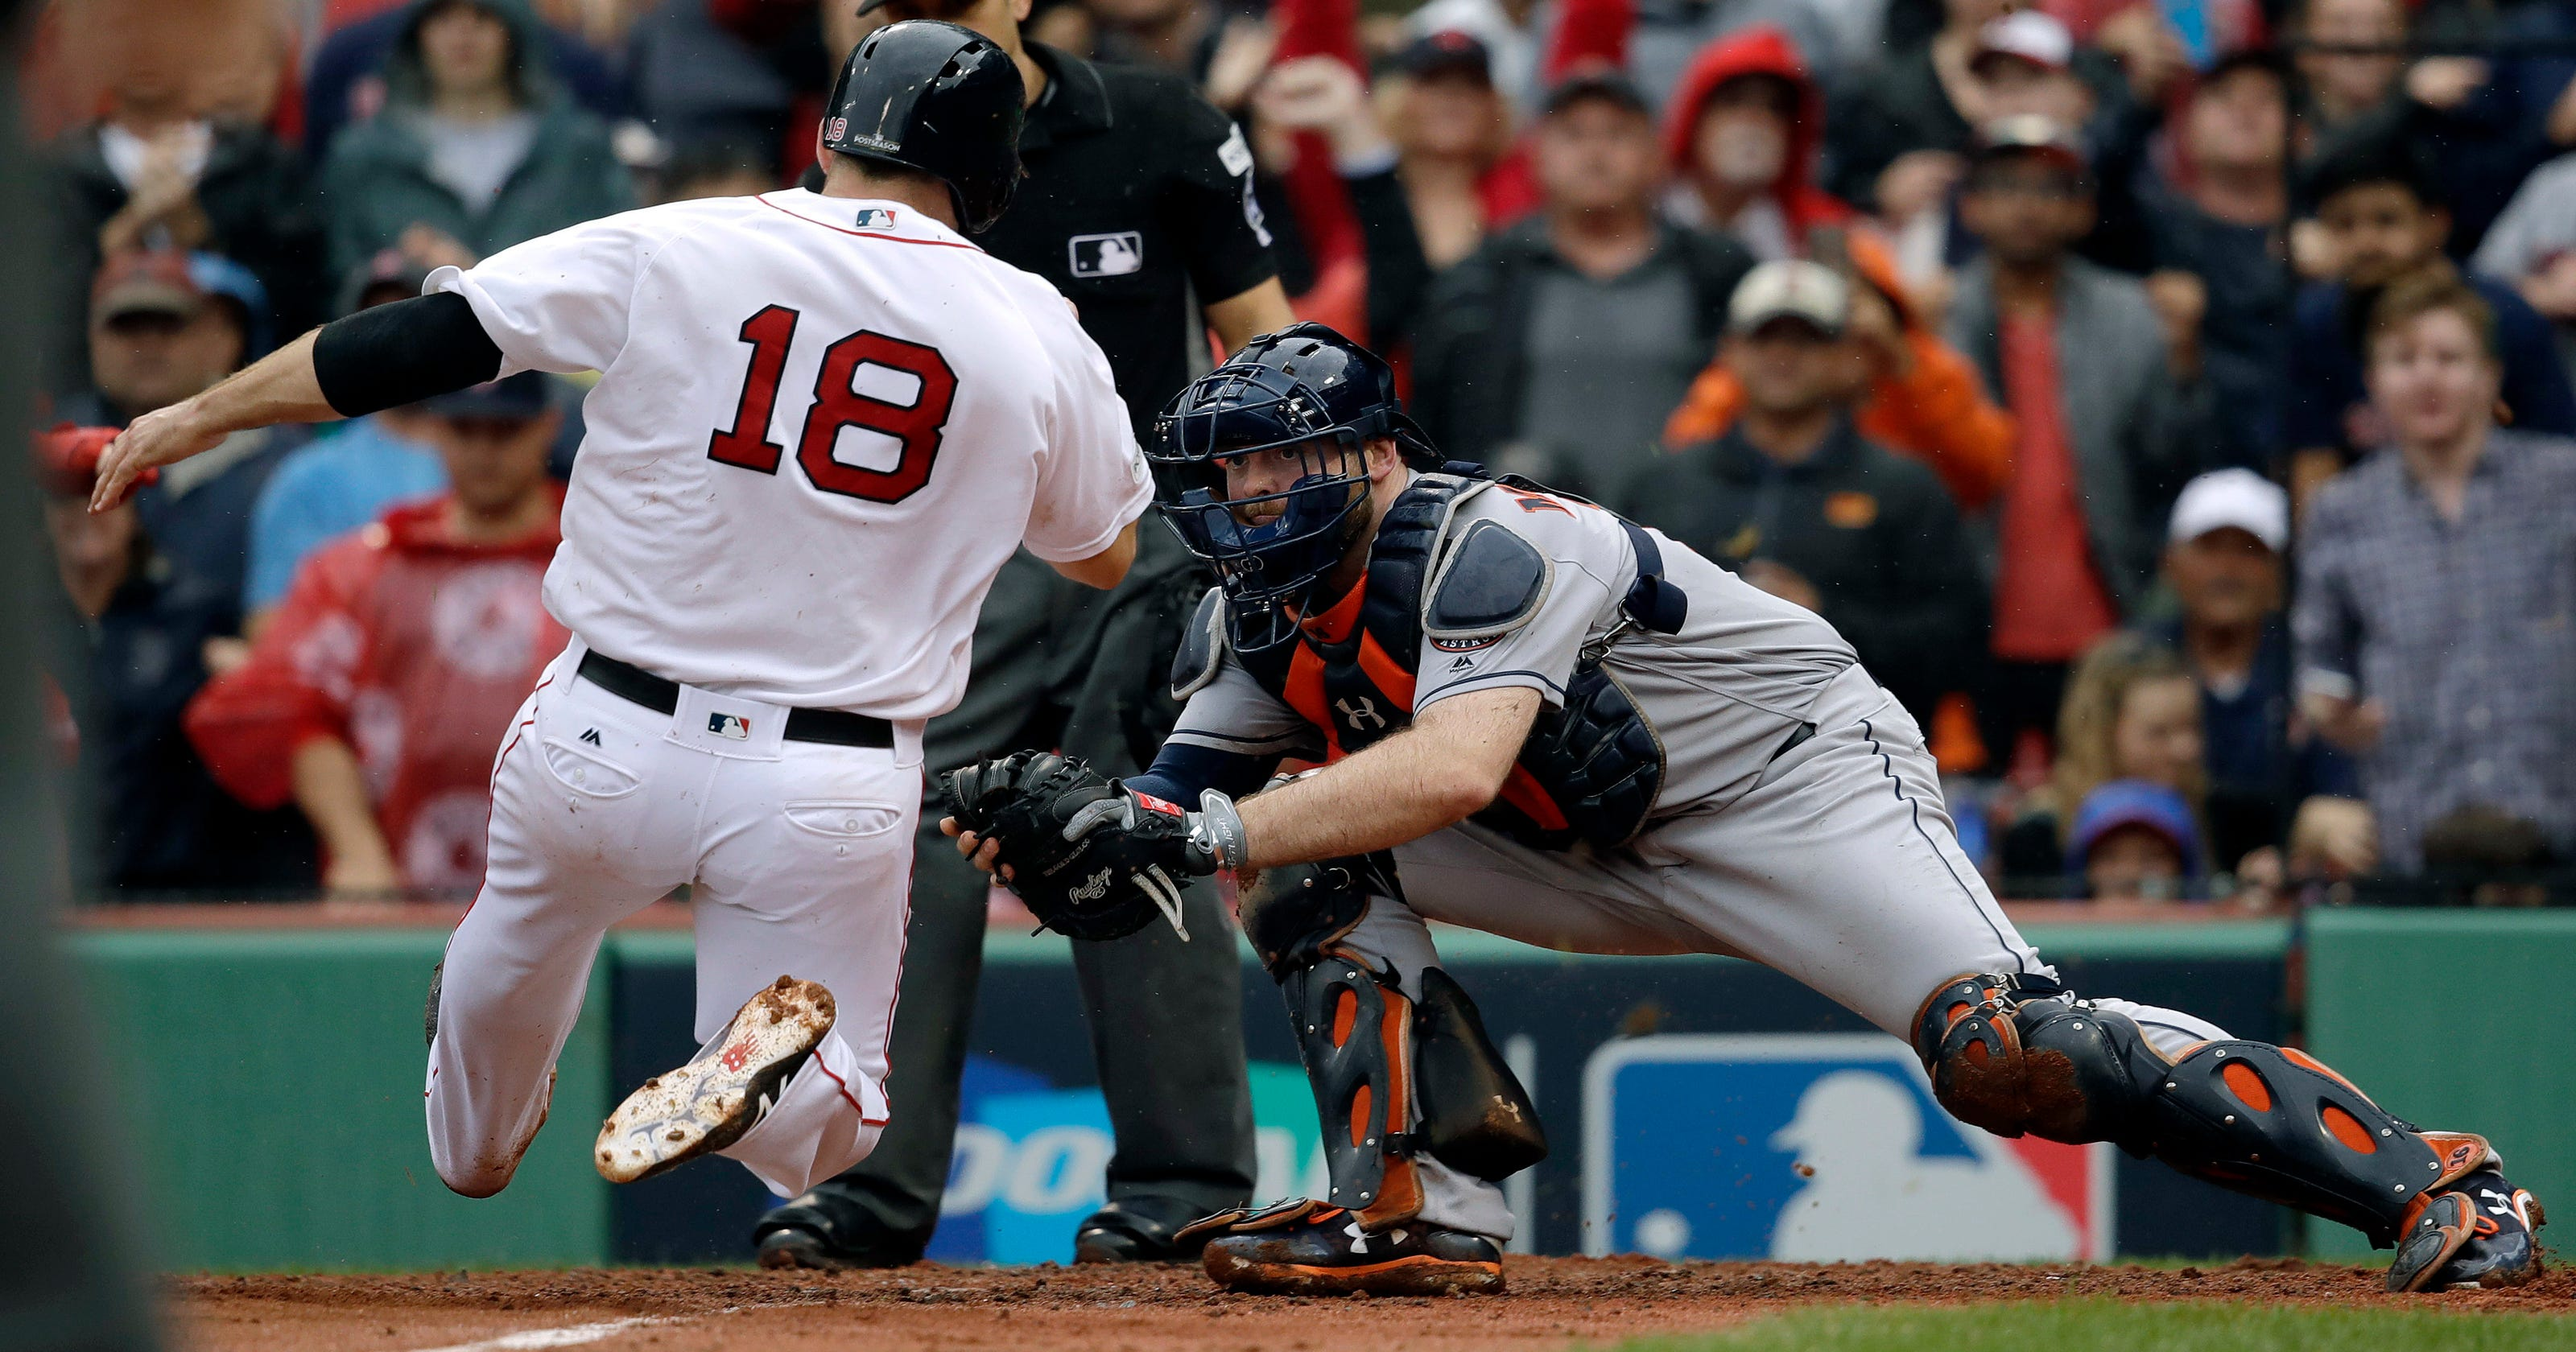 a28928b11 Astros beat Red Sox 5-4 in Game 4